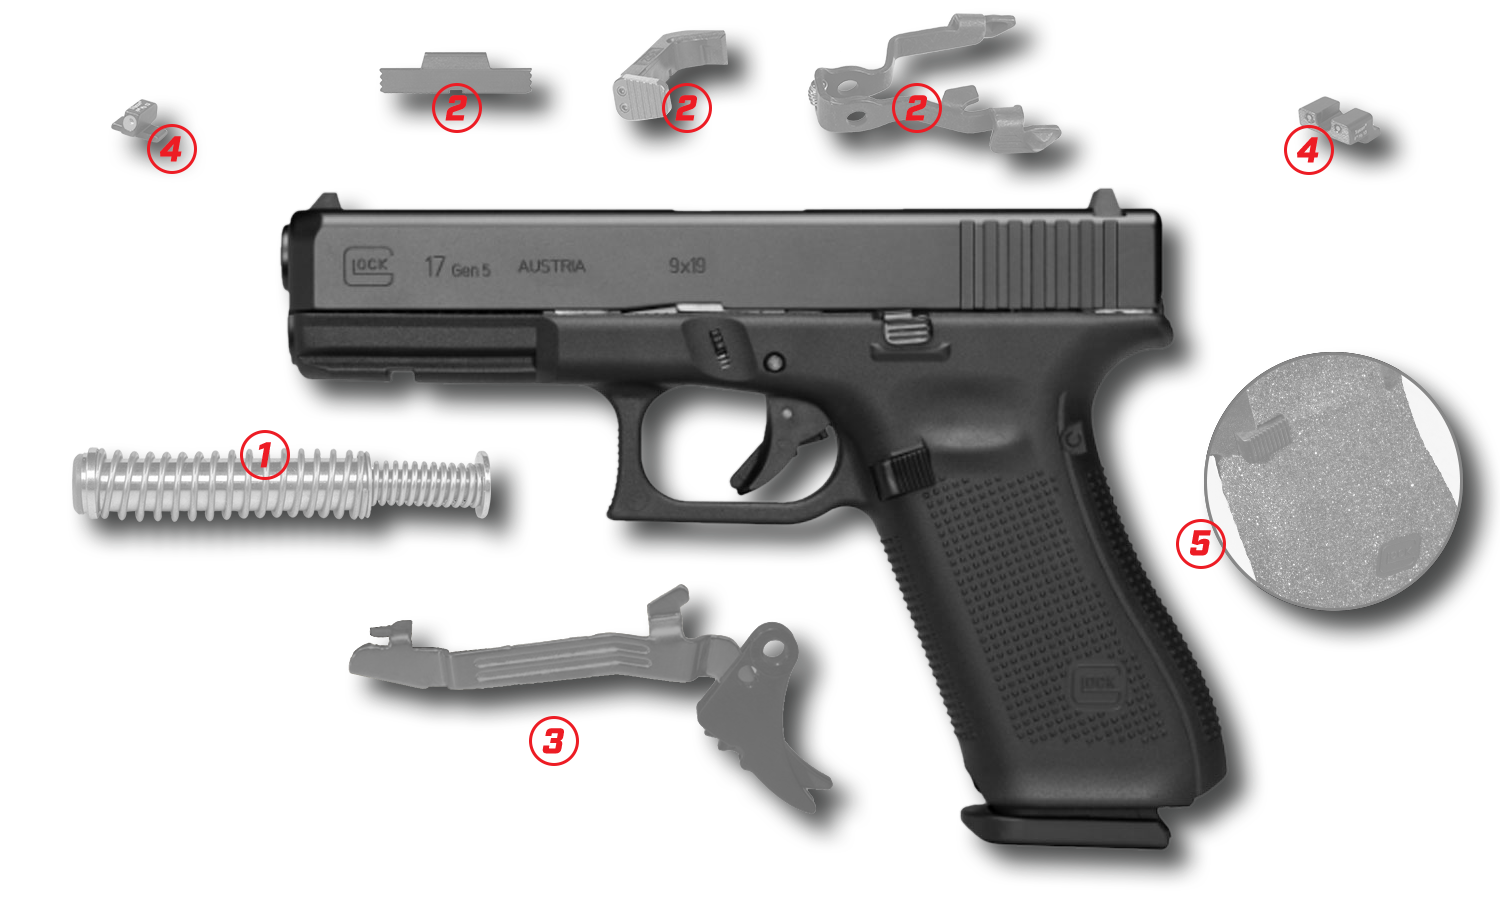 Lenny Magill's Top 5 Upgrades for your Glock!